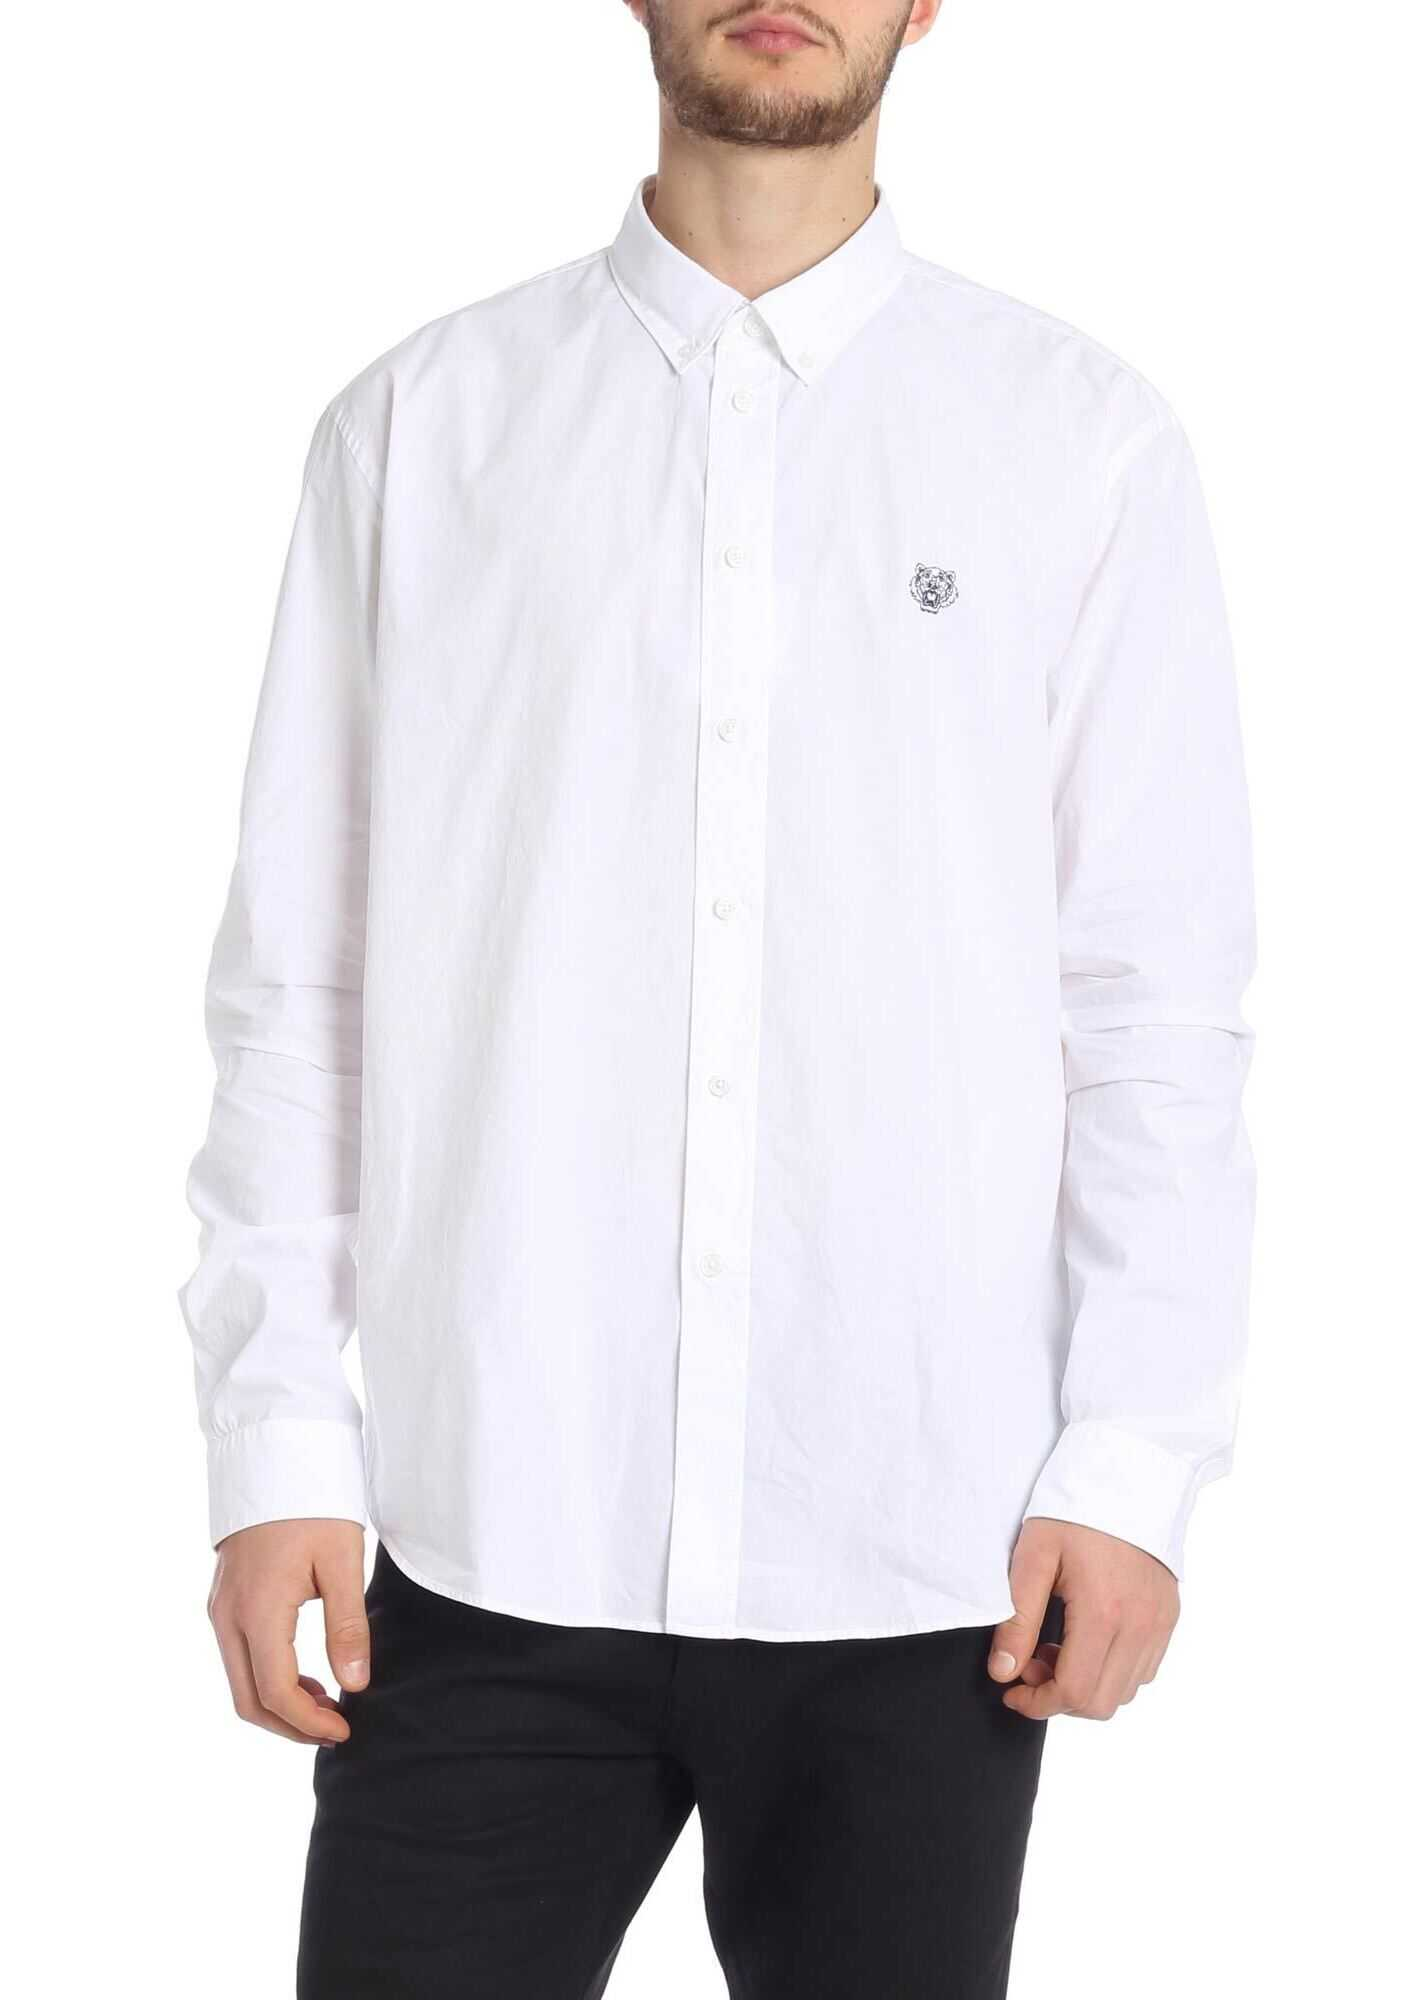 Kenzo White Tiger Crest Shirt With Embroidery White imagine